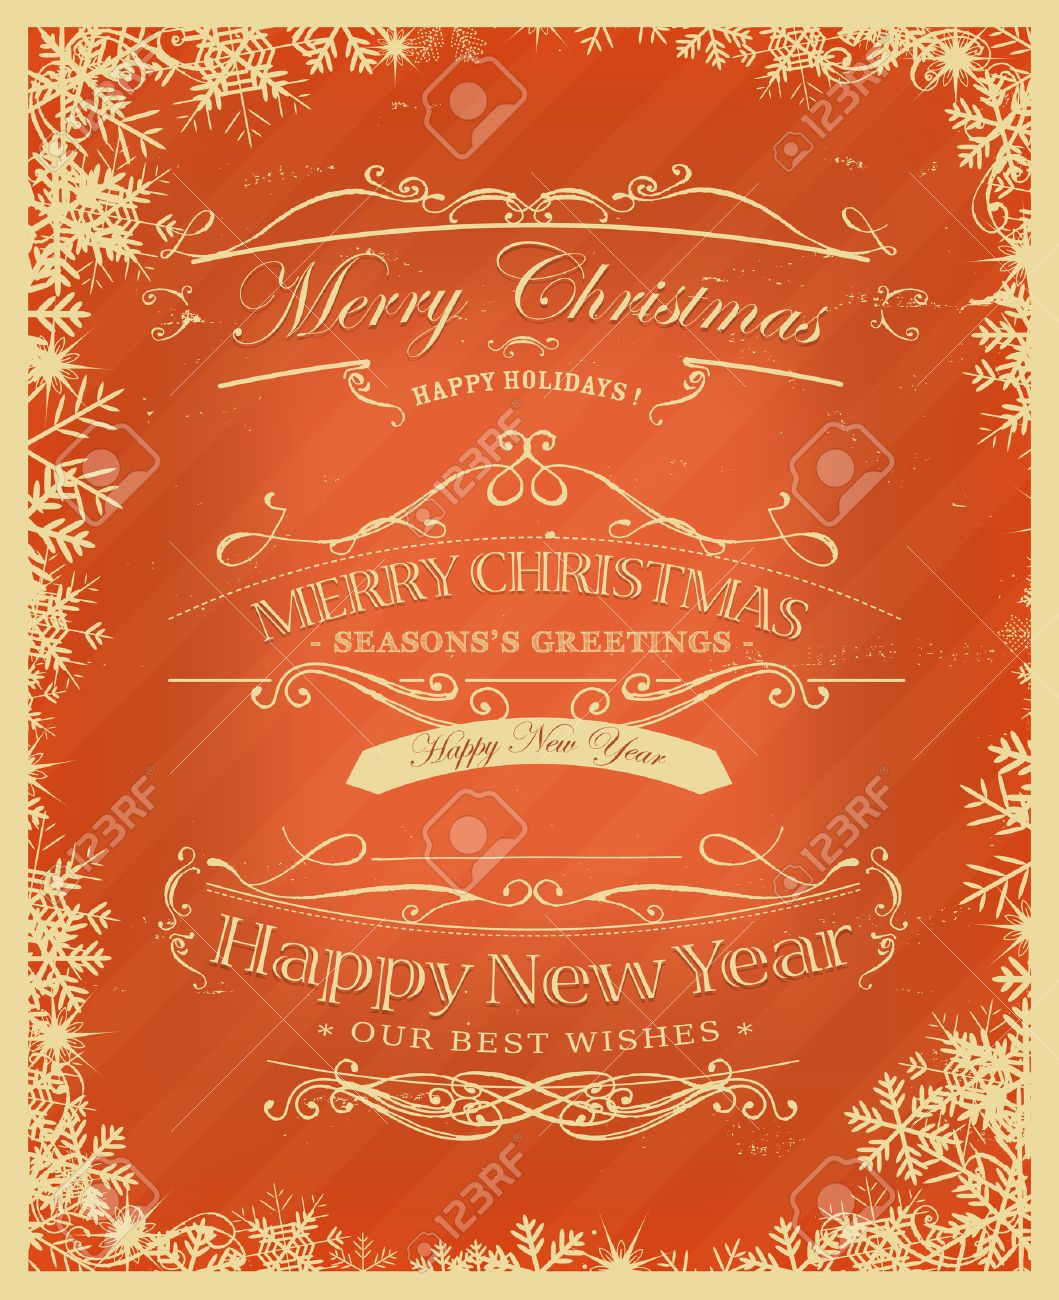 Illustration of a vintage placard poster background for christmas illustration of a vintage placard poster background for christmas seasons greetings and happy new years kristyandbryce Choice Image